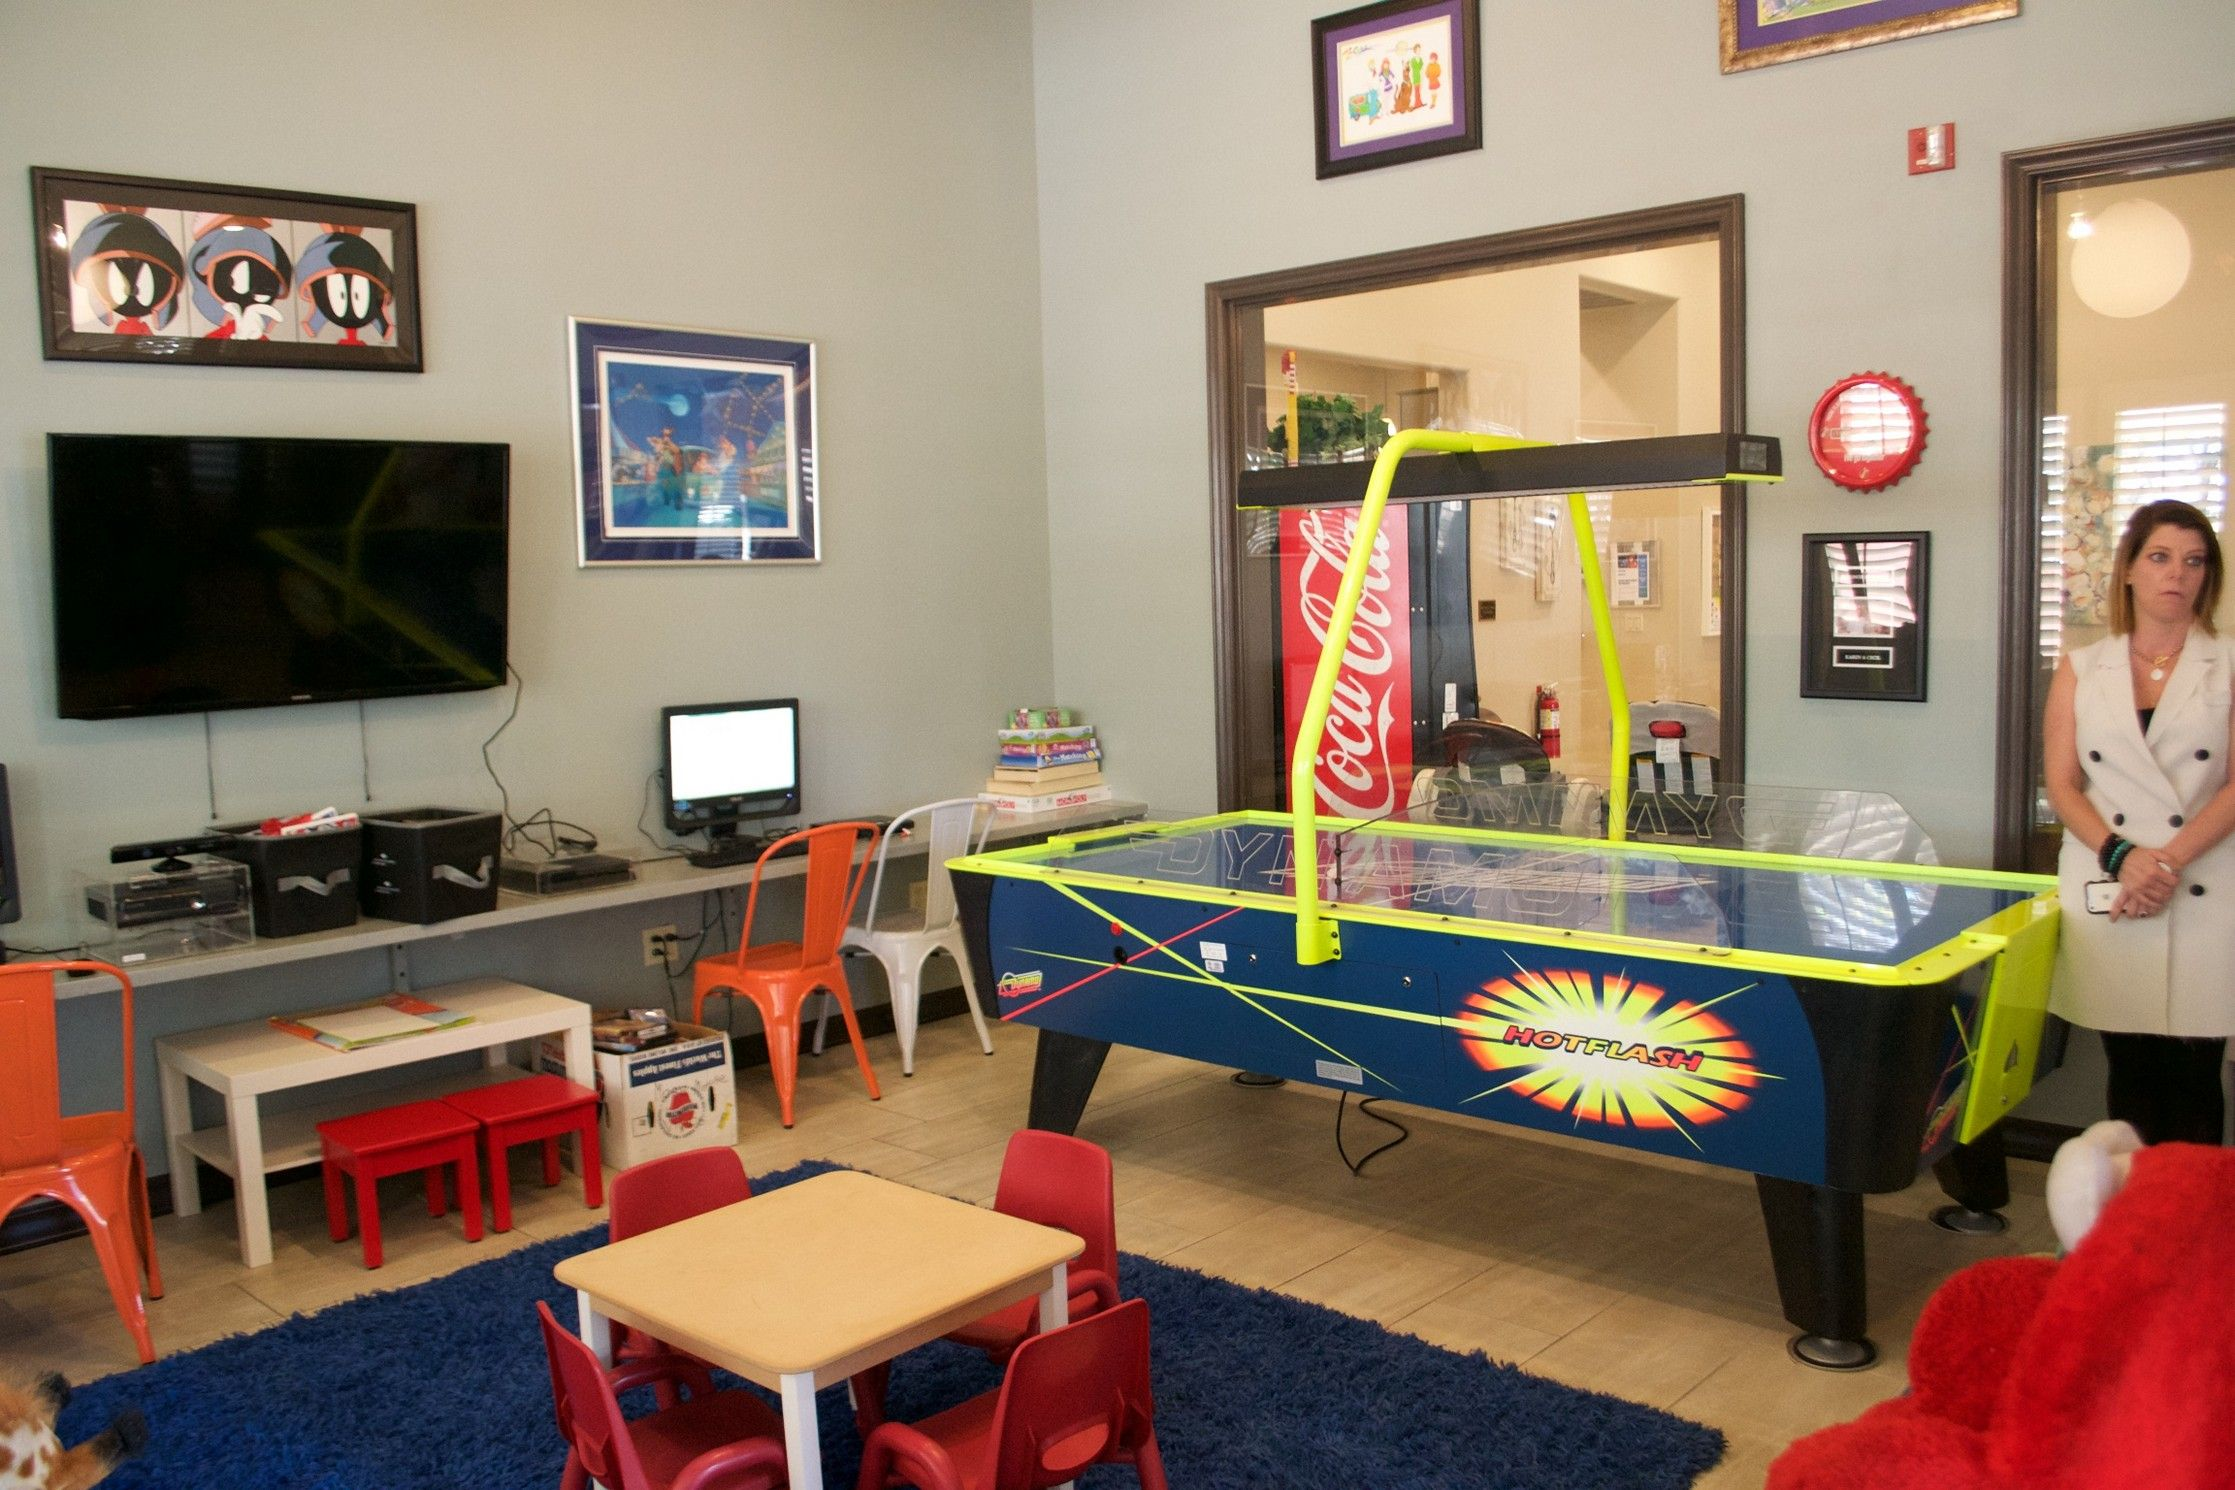 17 Most Popular Video Game Room Ideas Feel the Awesome